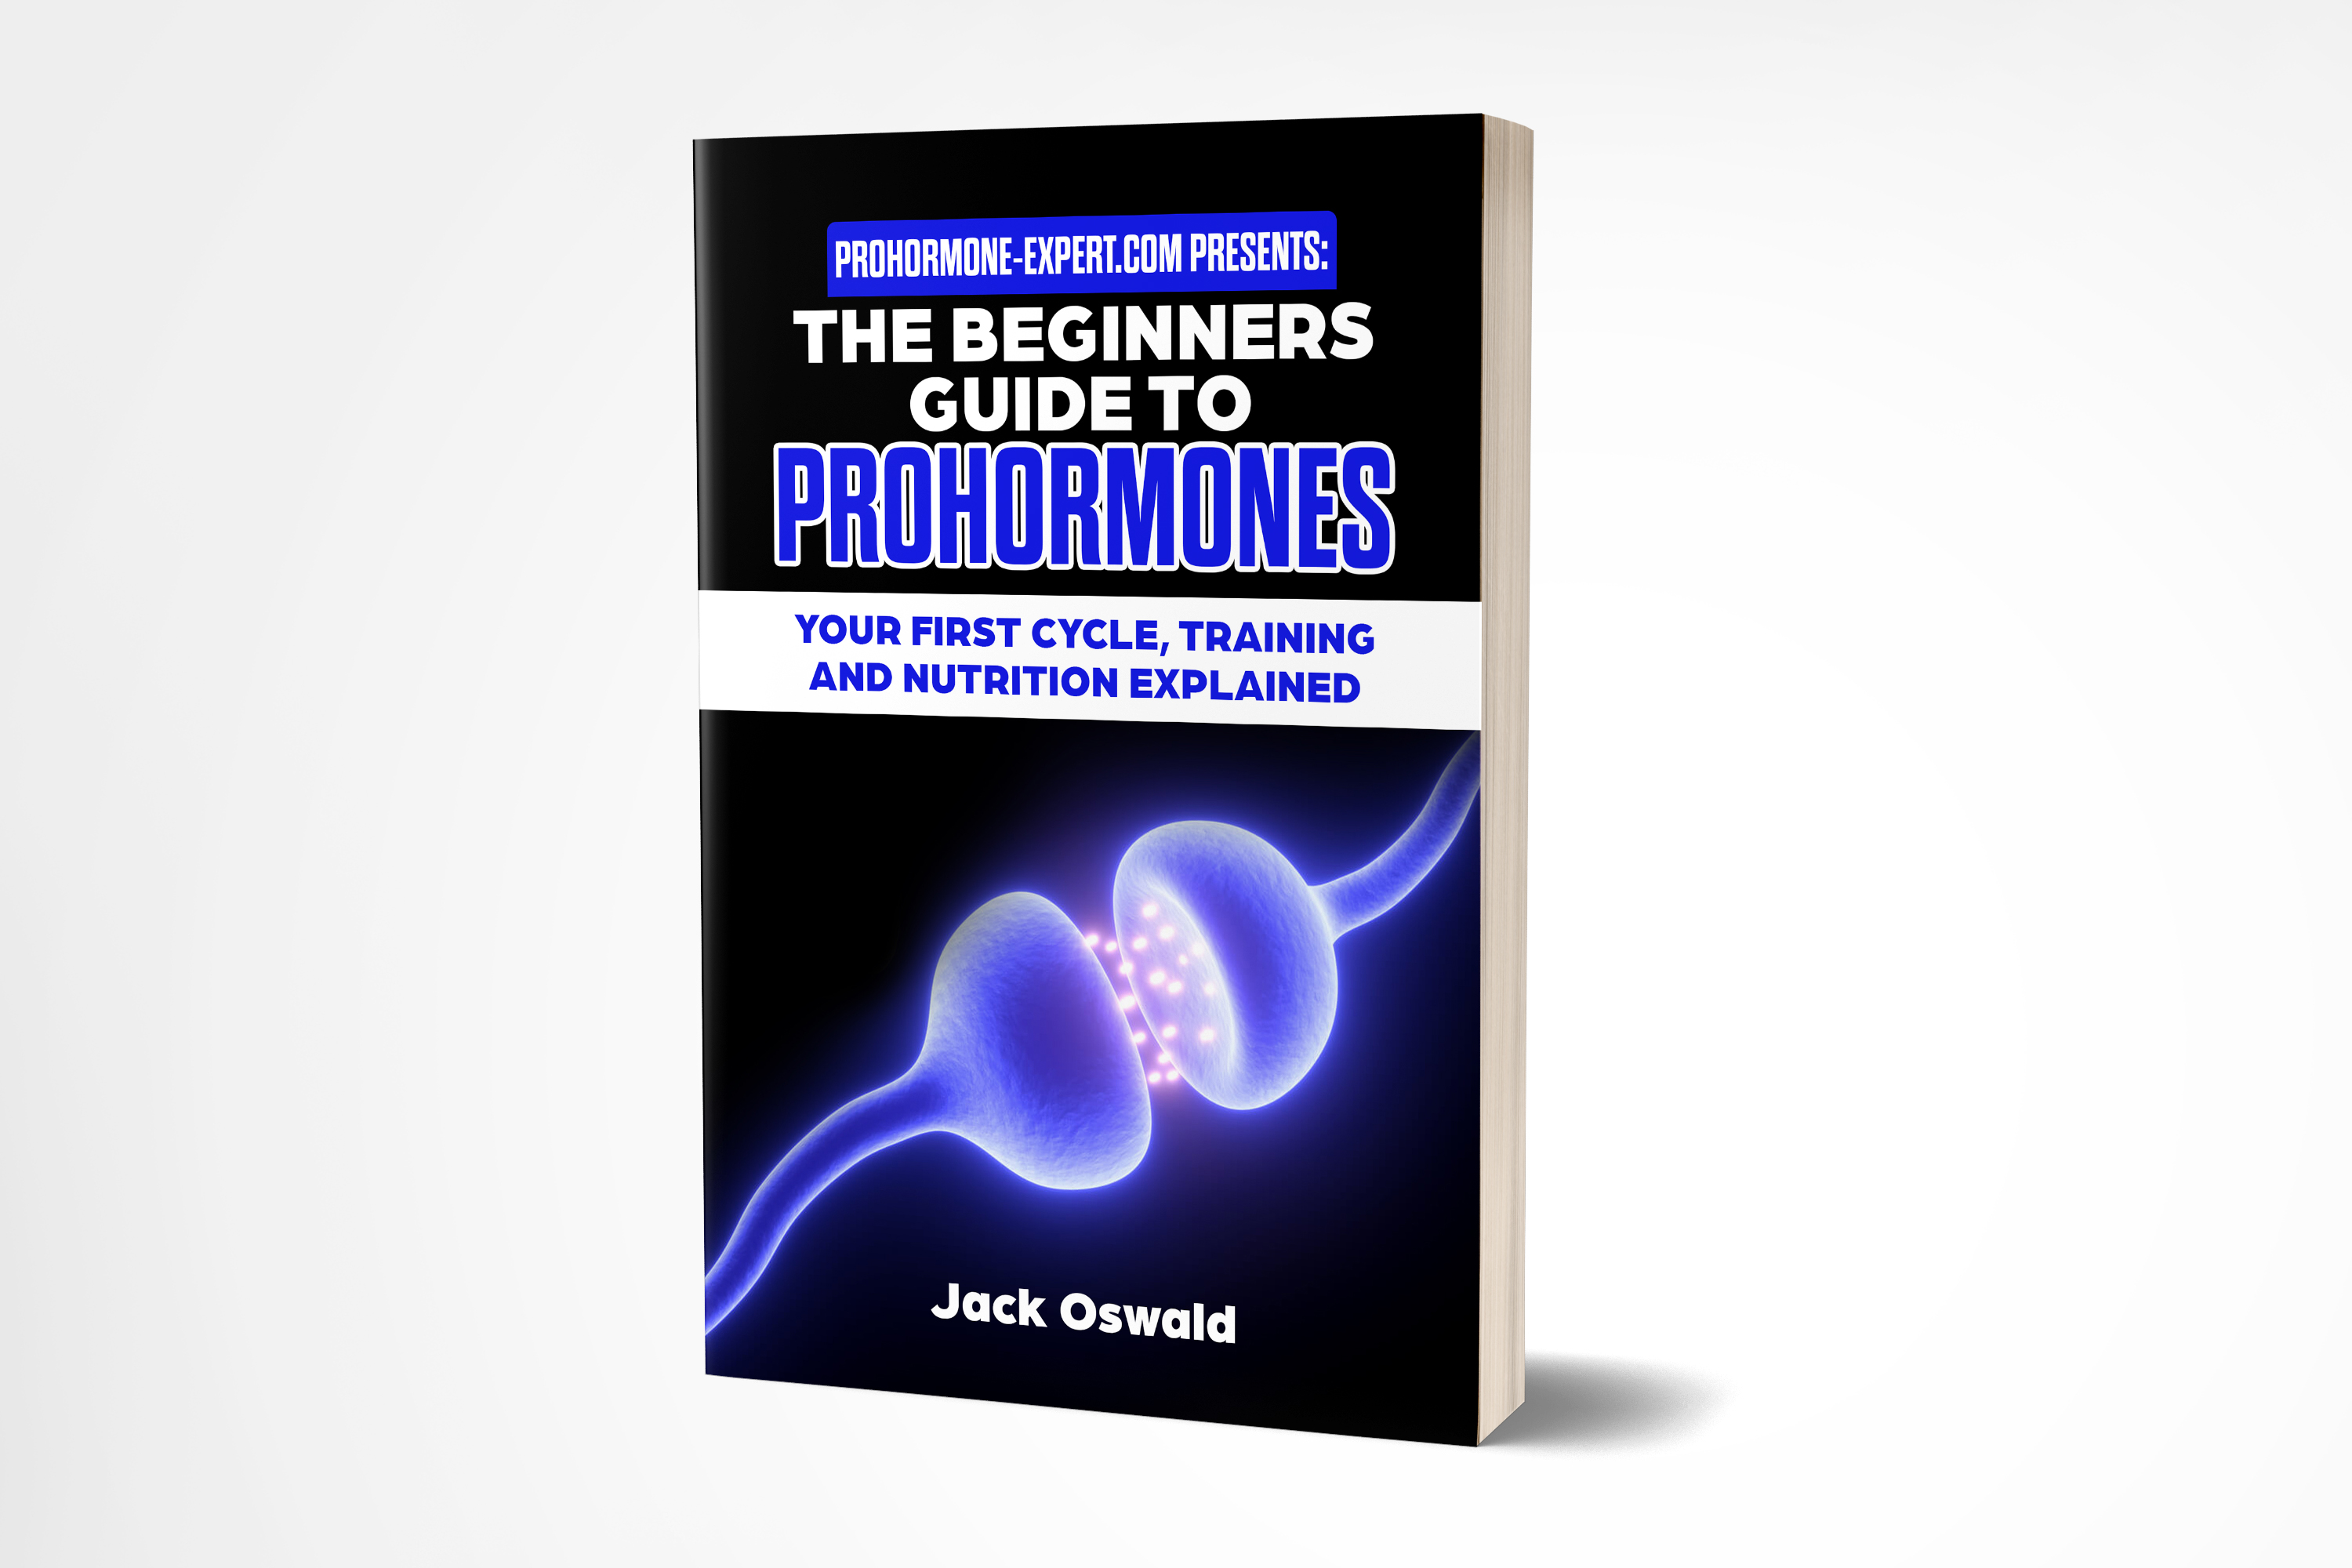 The Beginner's Guide to Prohormones - New Book by Jack